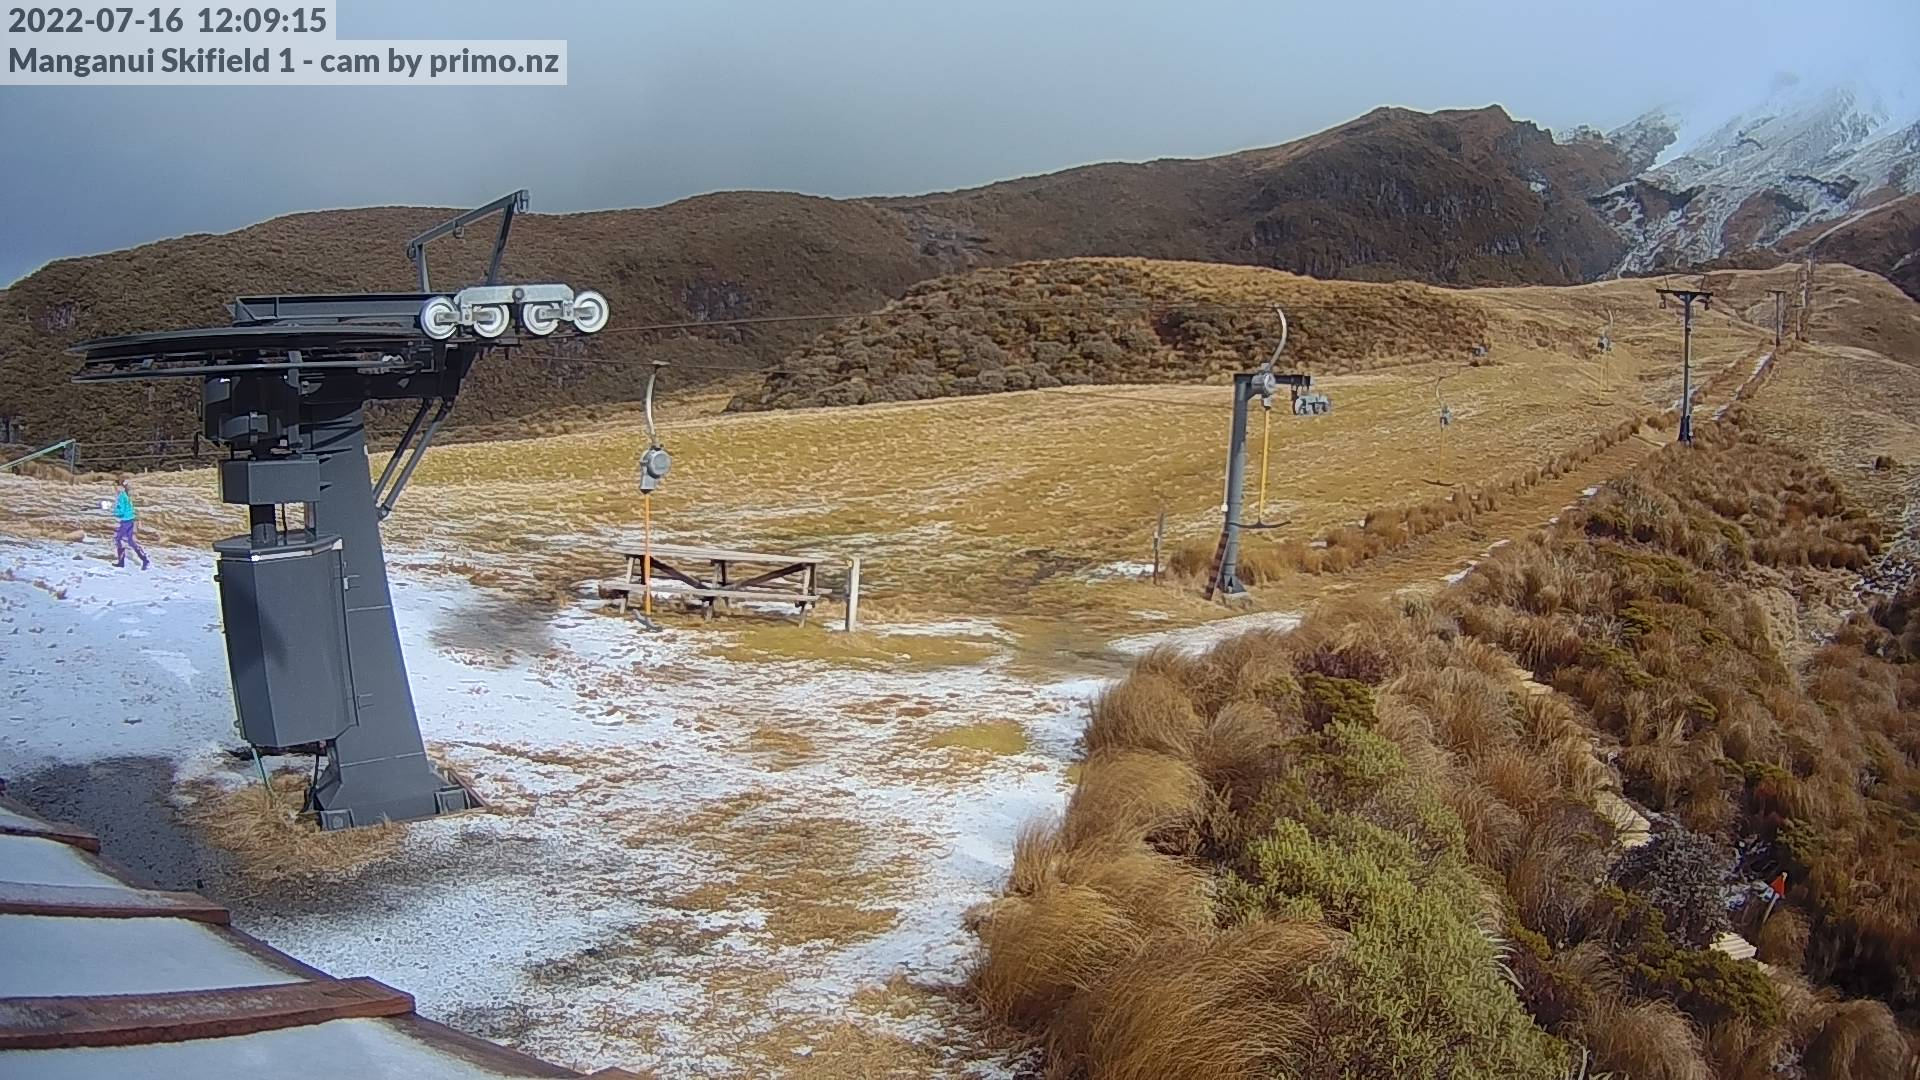 Manganui Skifield 1 - cam by primo.nz